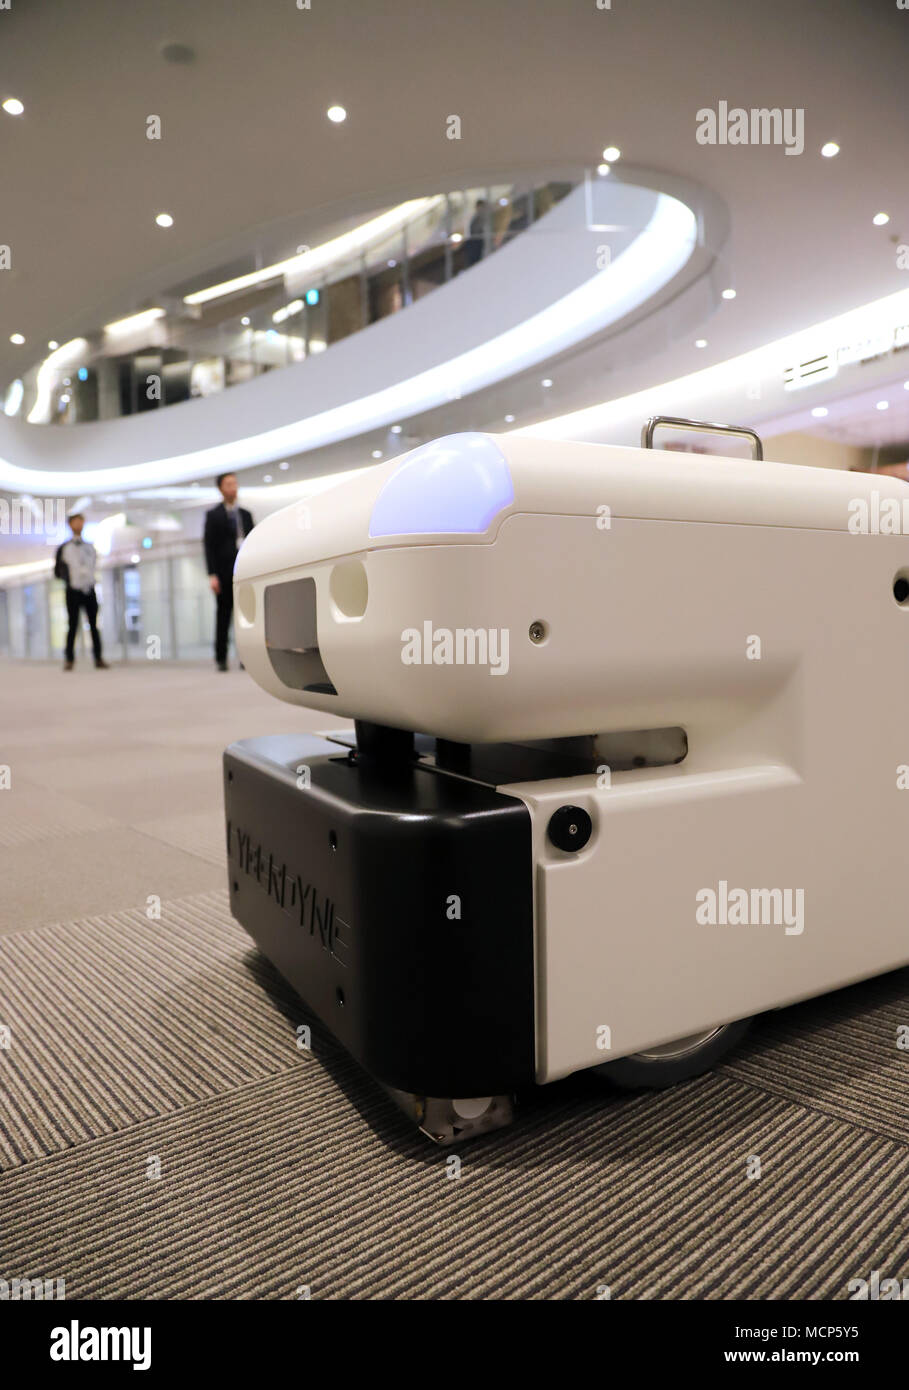 Autonomous Cleaning Robot Stock Photos & Autonomous Cleaning Robot